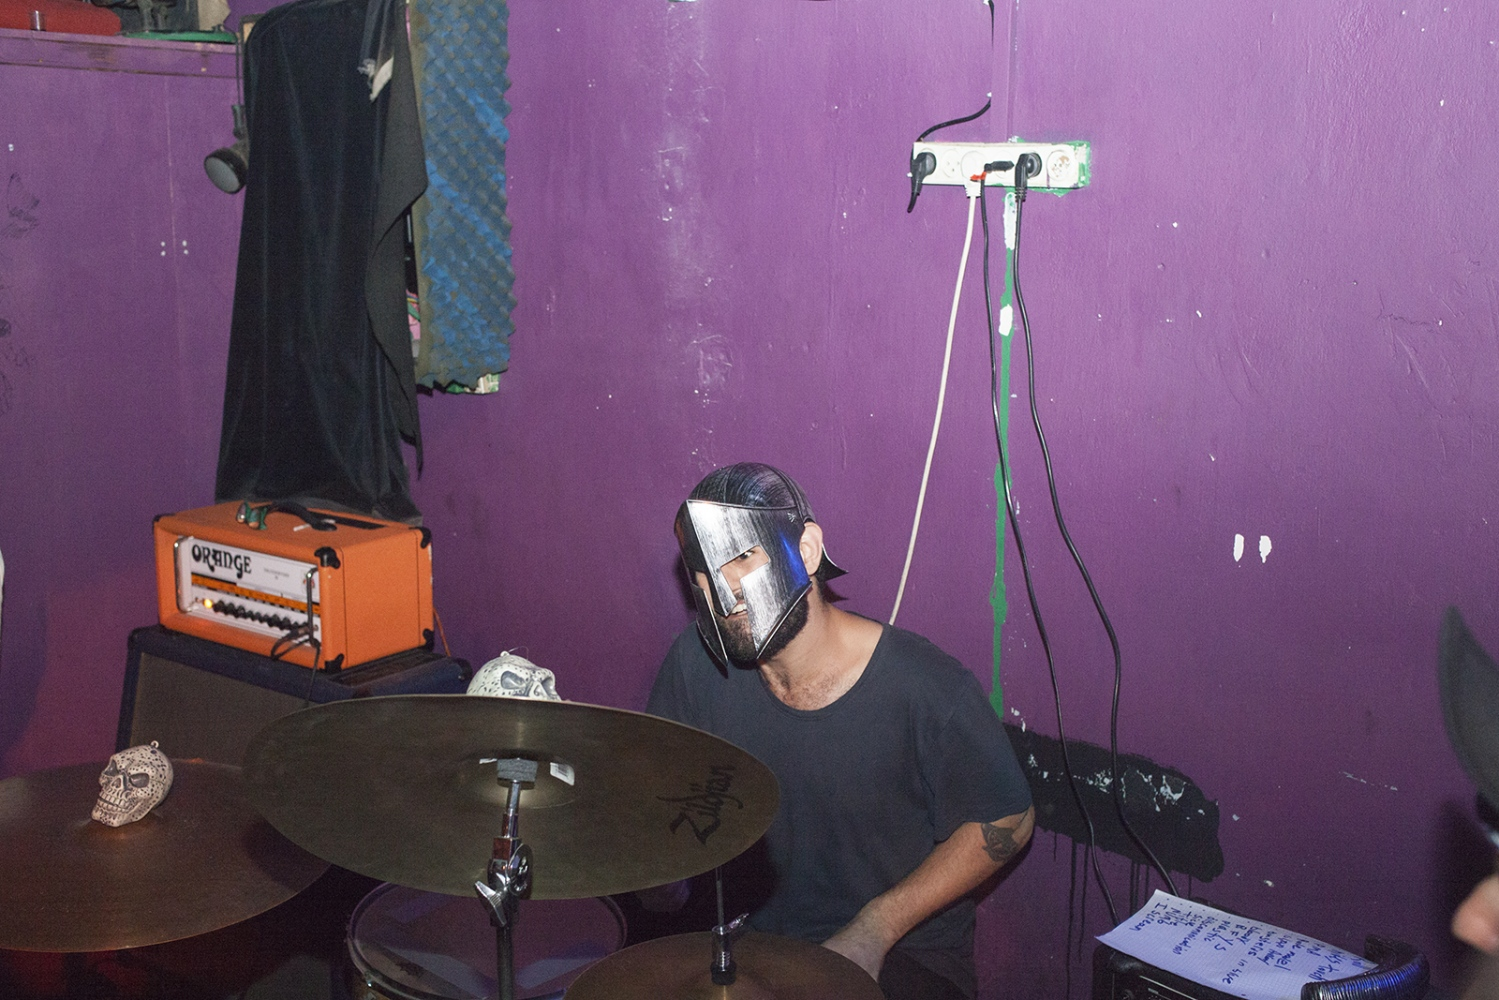 Drummer of Dust with helmet.